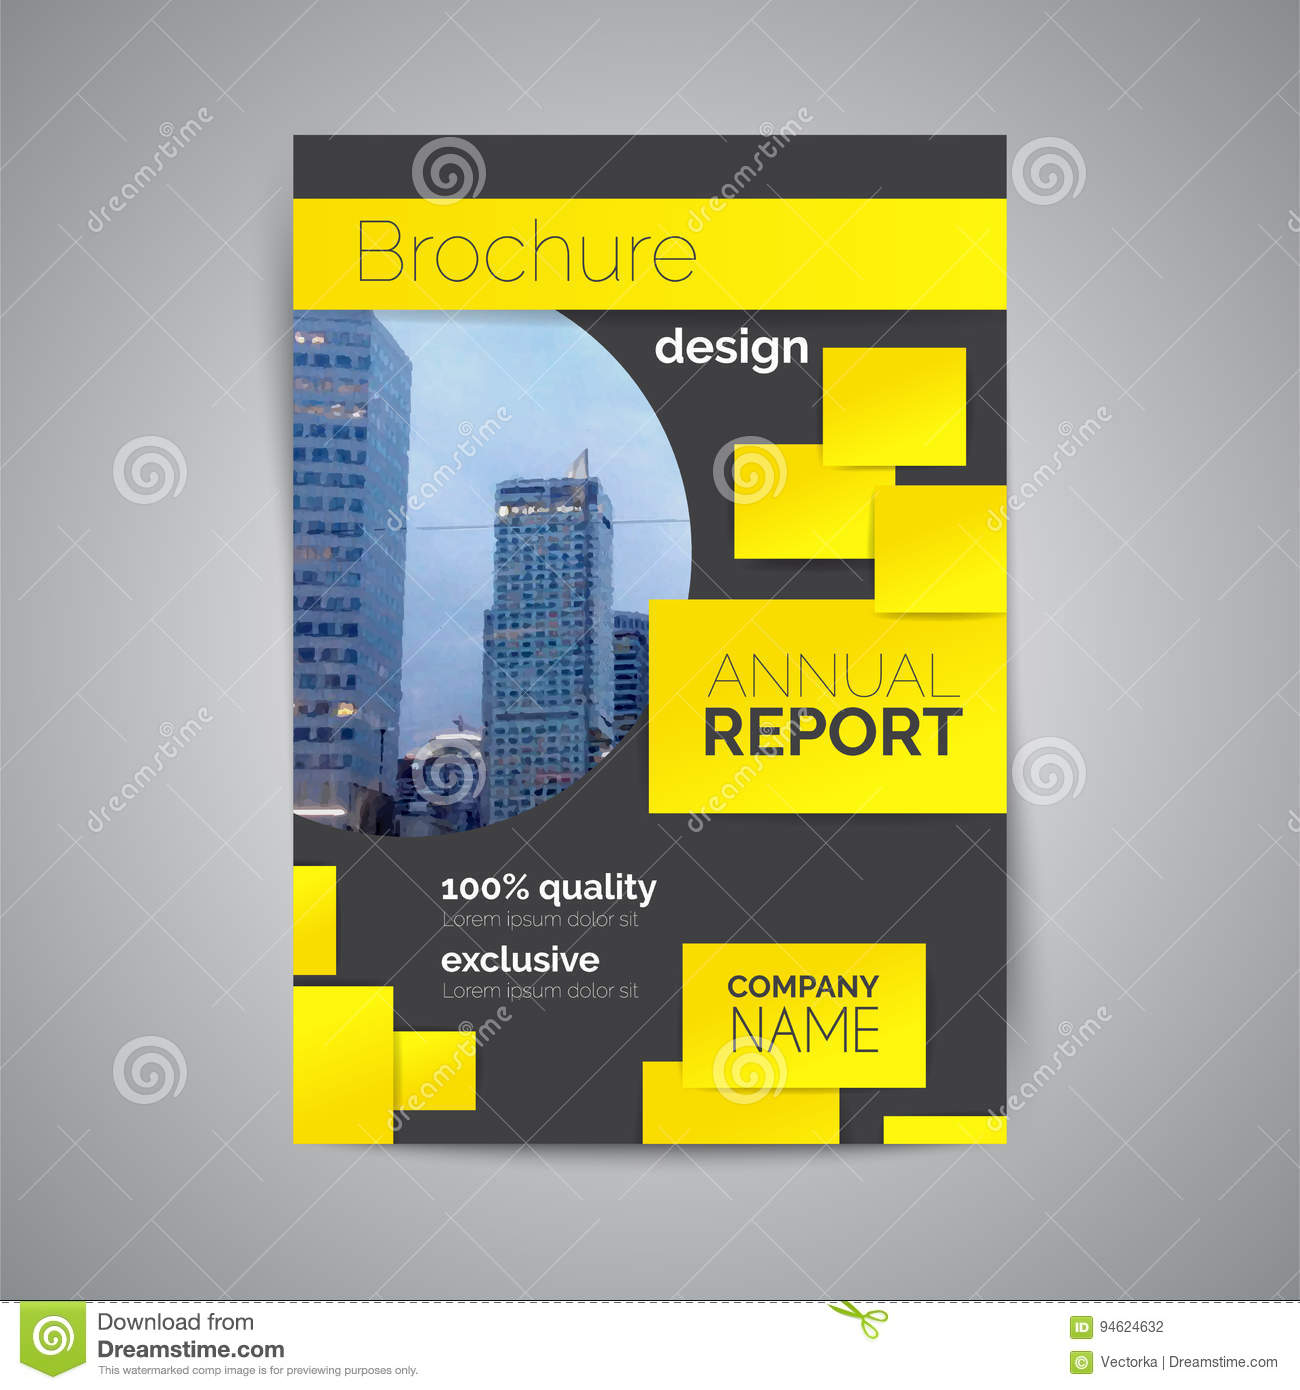 book cover template illustrator - annual report book cover template abstract business